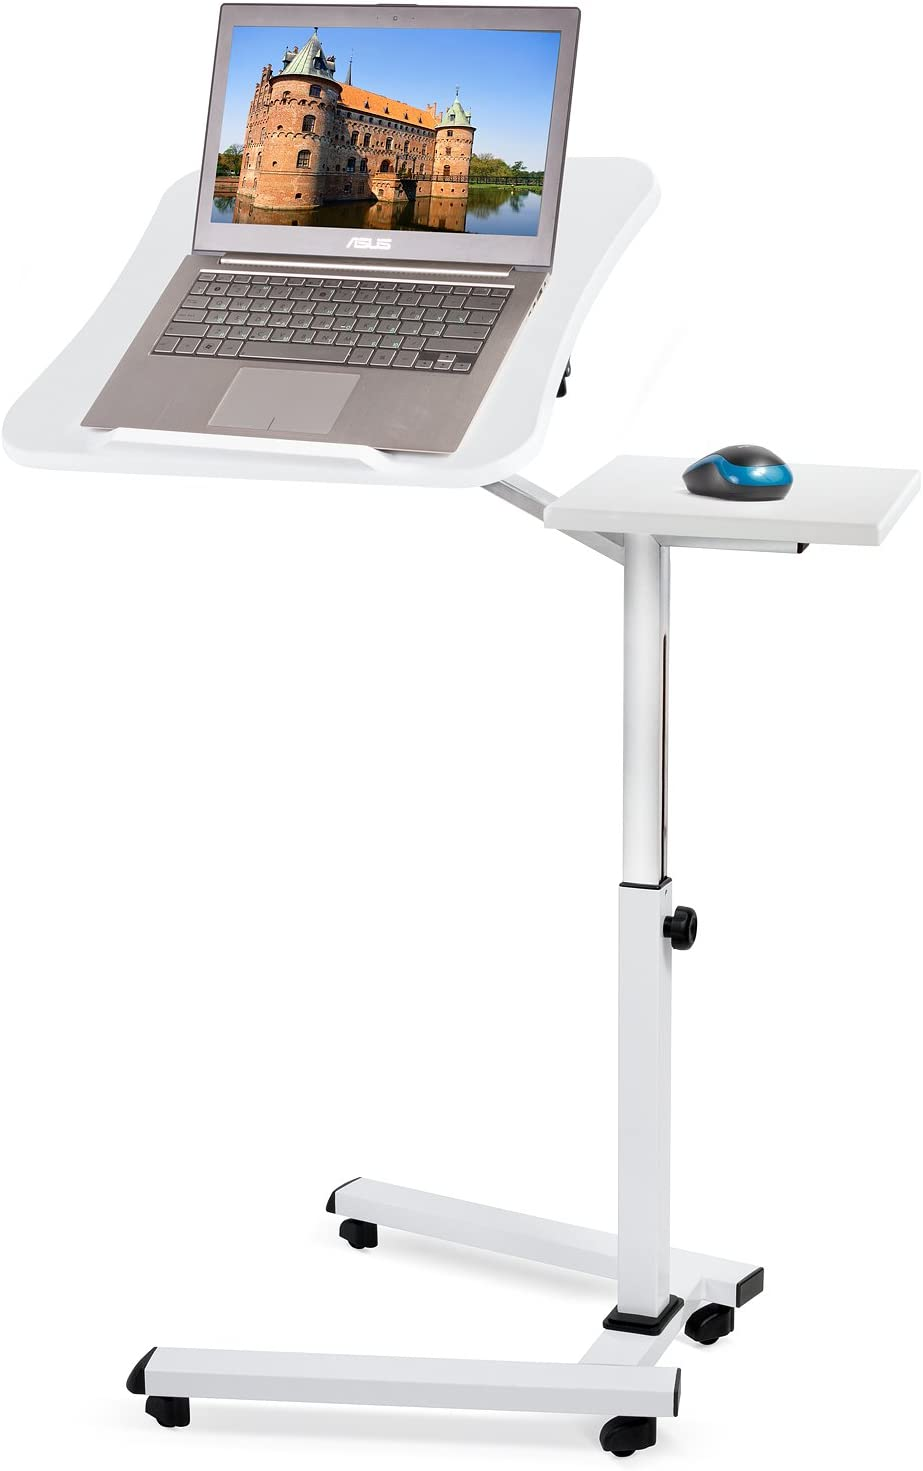 Tatkraft Like Portable Laptop Desk with Mouse Pad, Rolling Computer Stand with Adjustable Height, Sturdy and Ergonomic, White